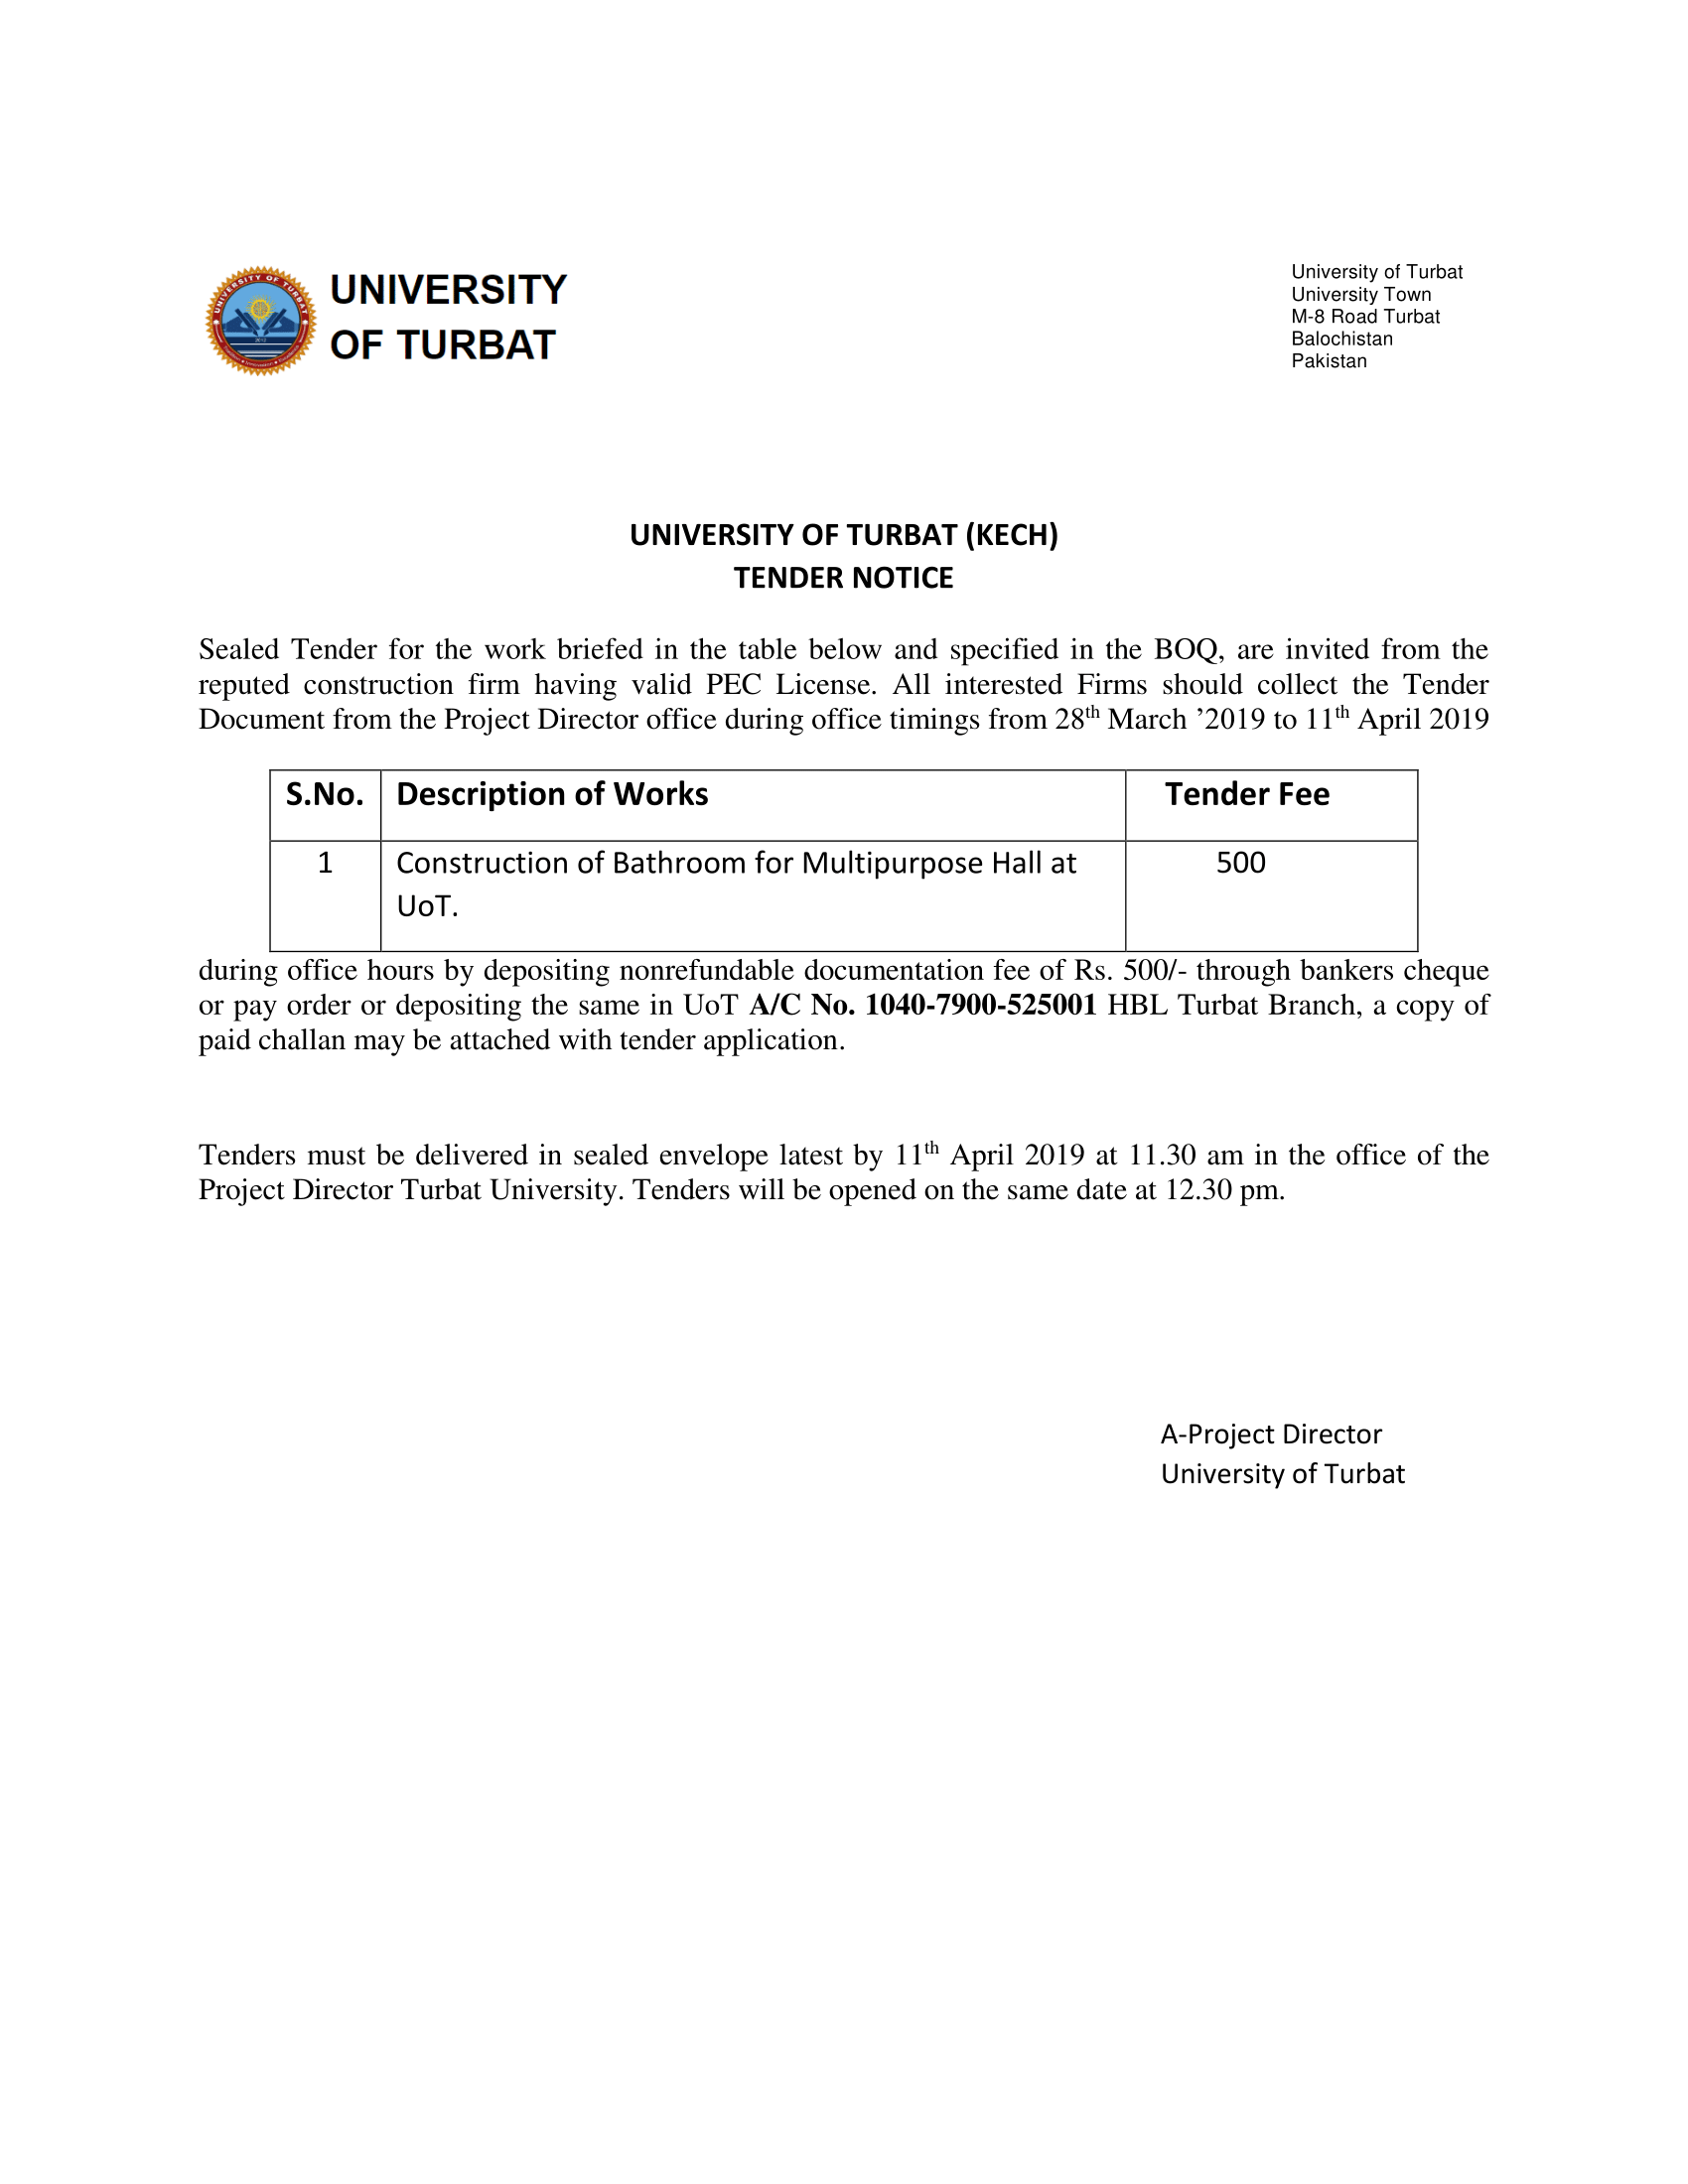 Tender Notice (Construction of Bathroom for Multipurpose Hall at UoT)